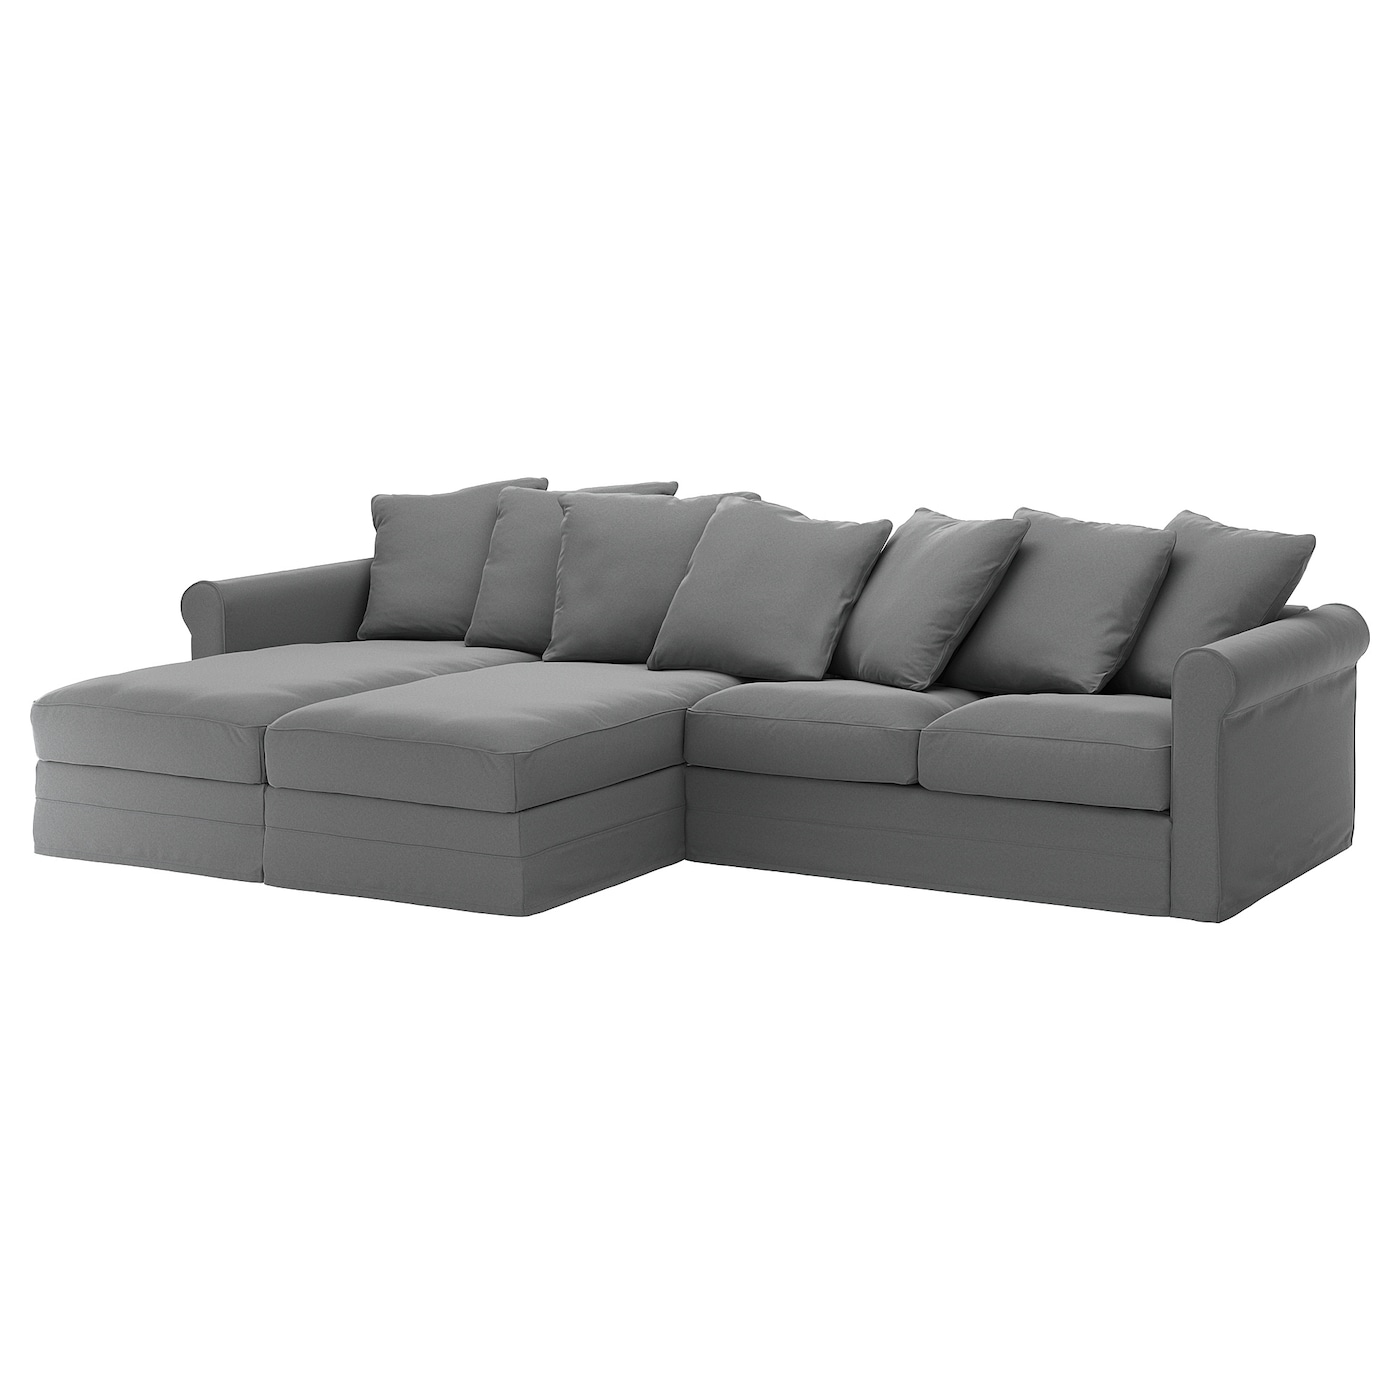 modular sofas ikea rh ikea com sofas and sectionals